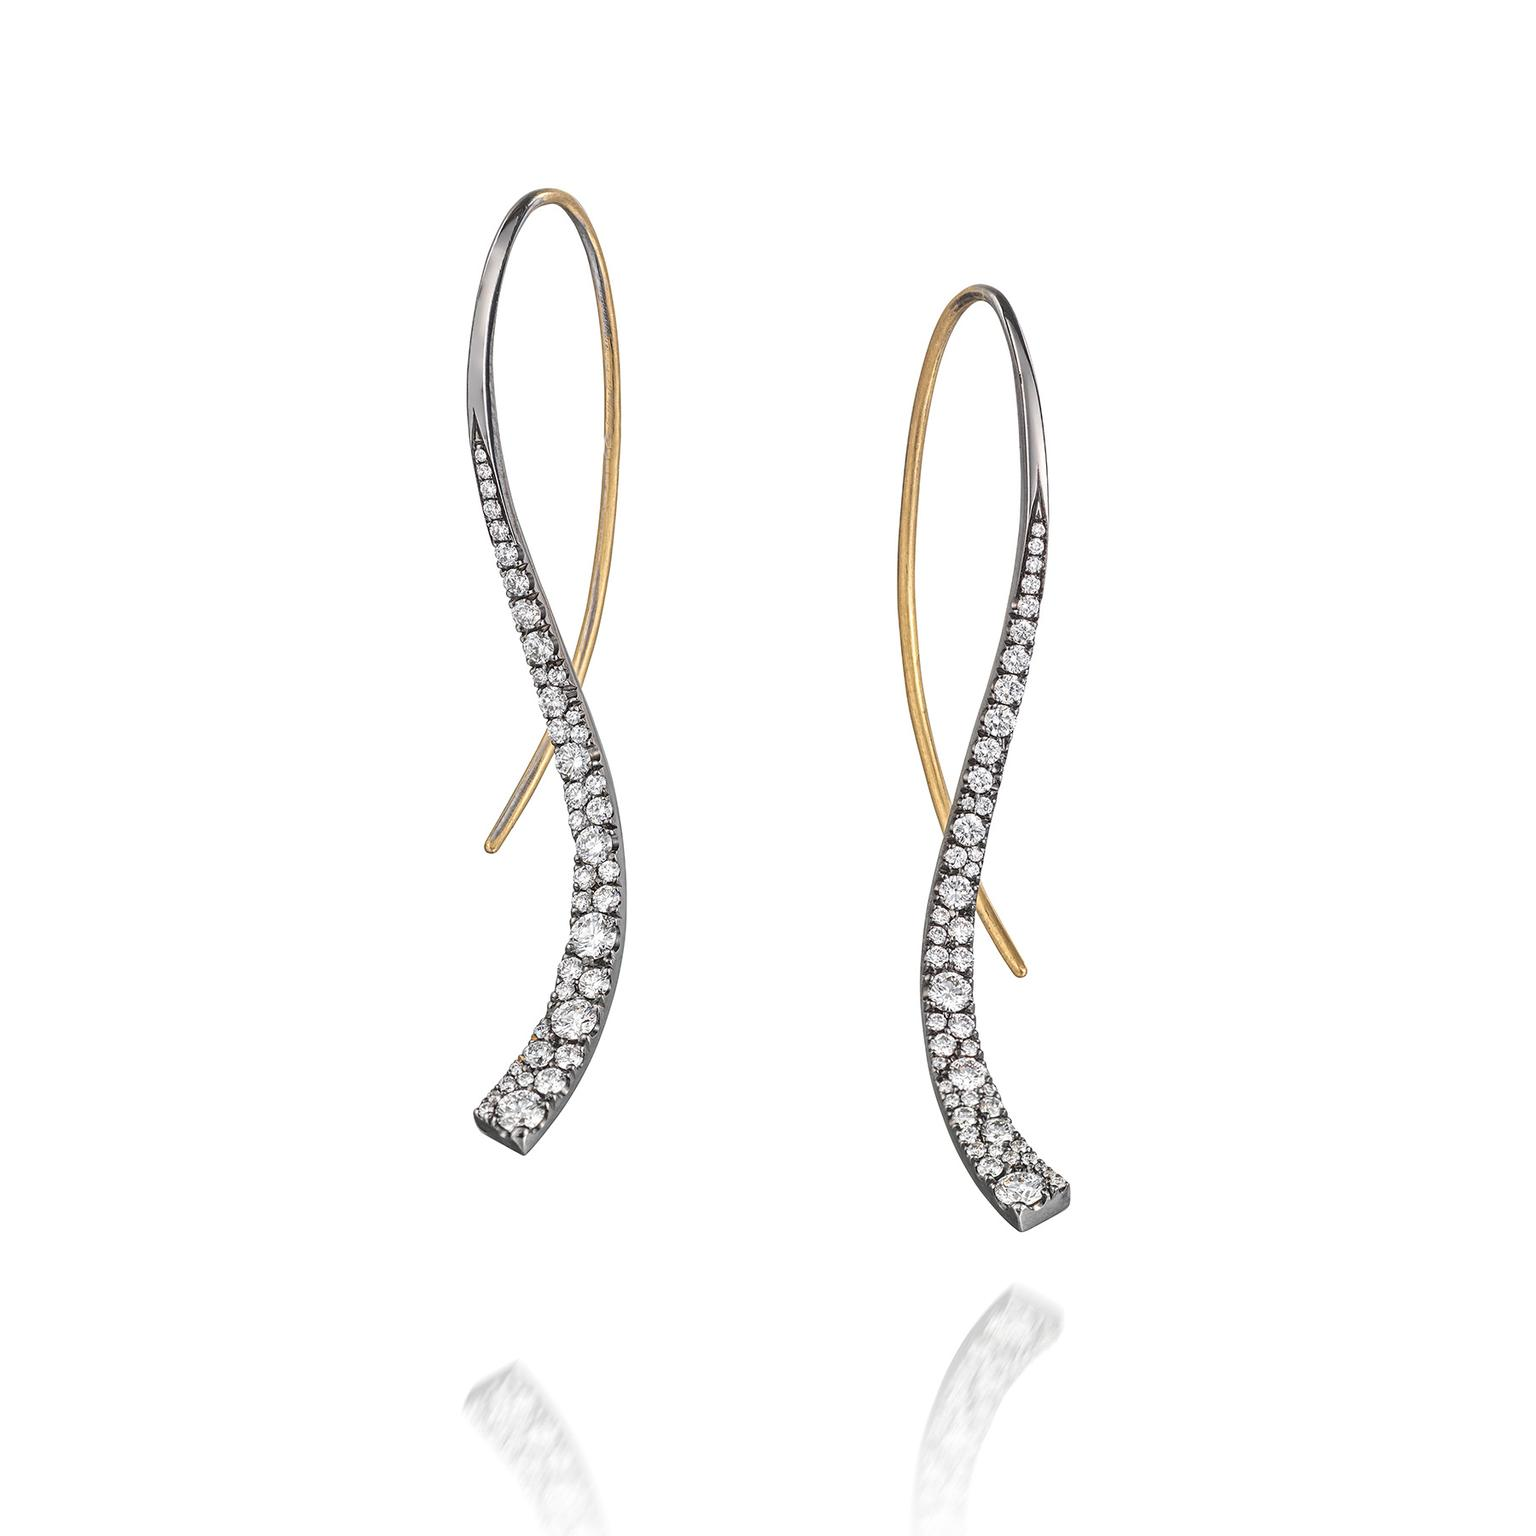 McCaul Goldsmiths Celestial diamond earrings